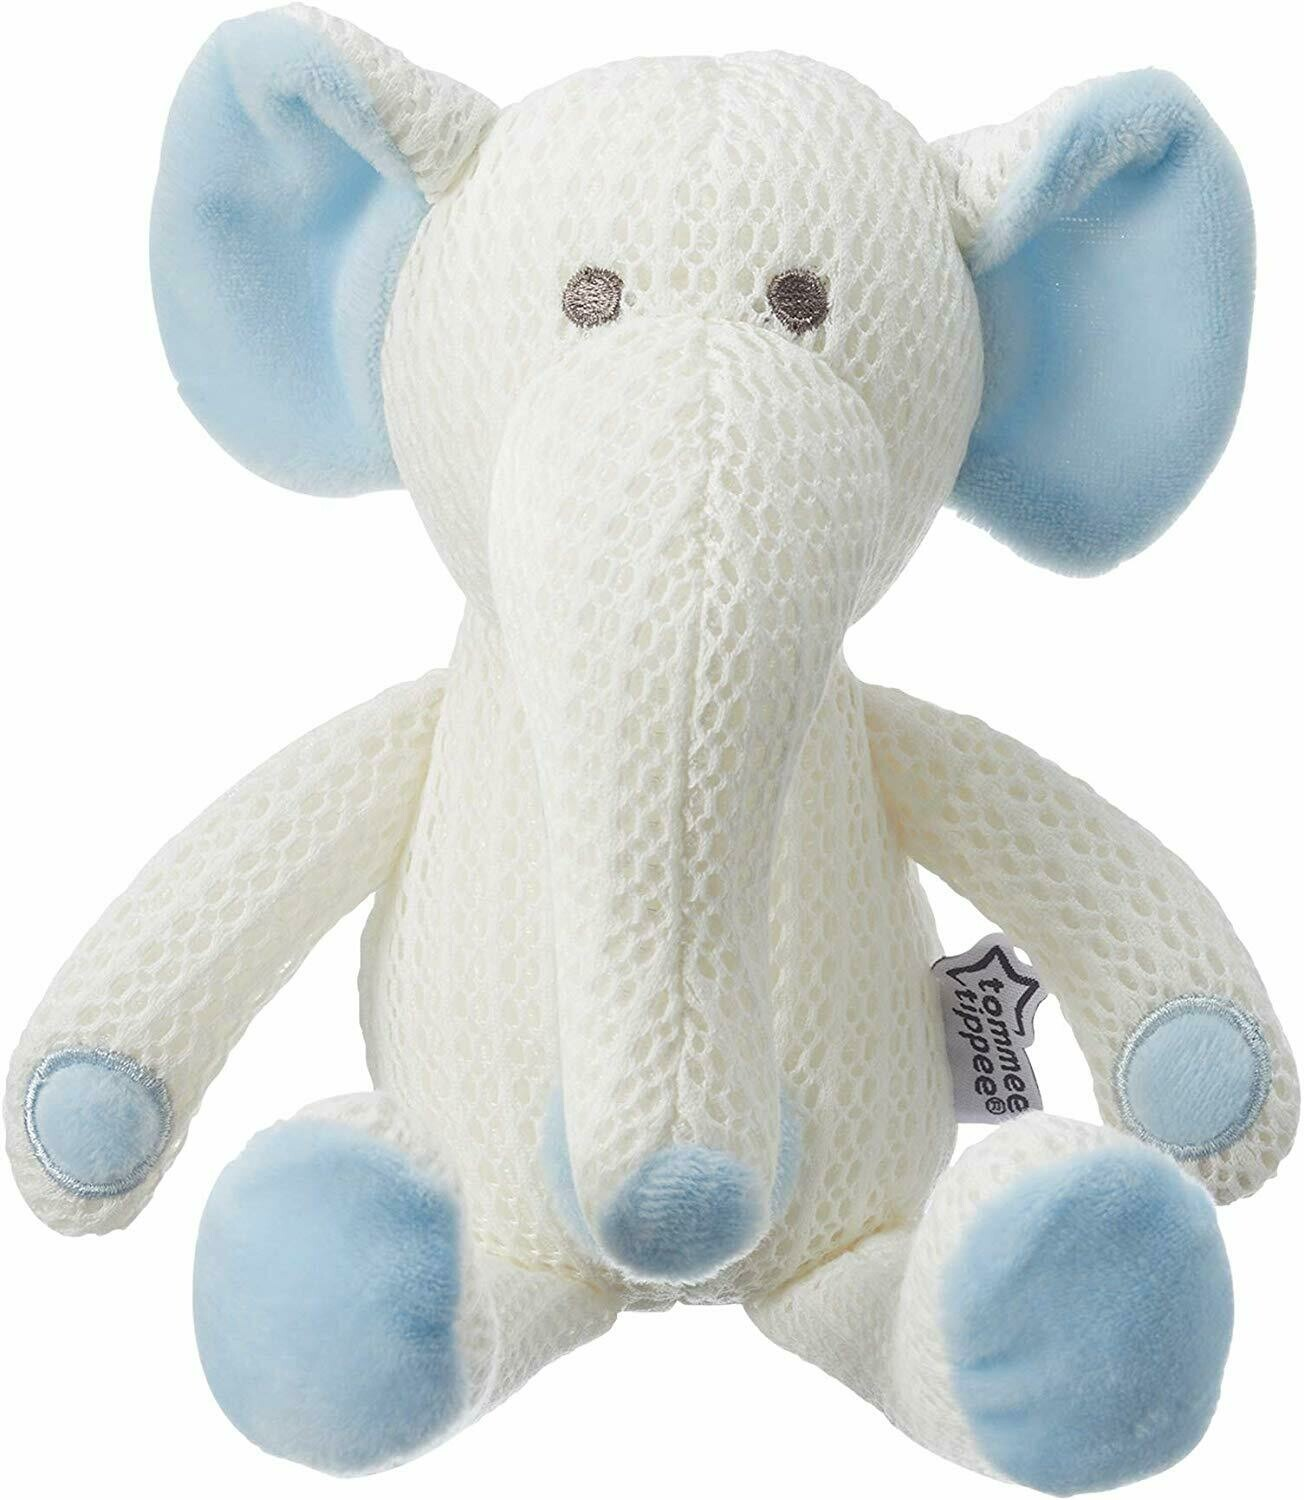 Breathable Toy Elephant